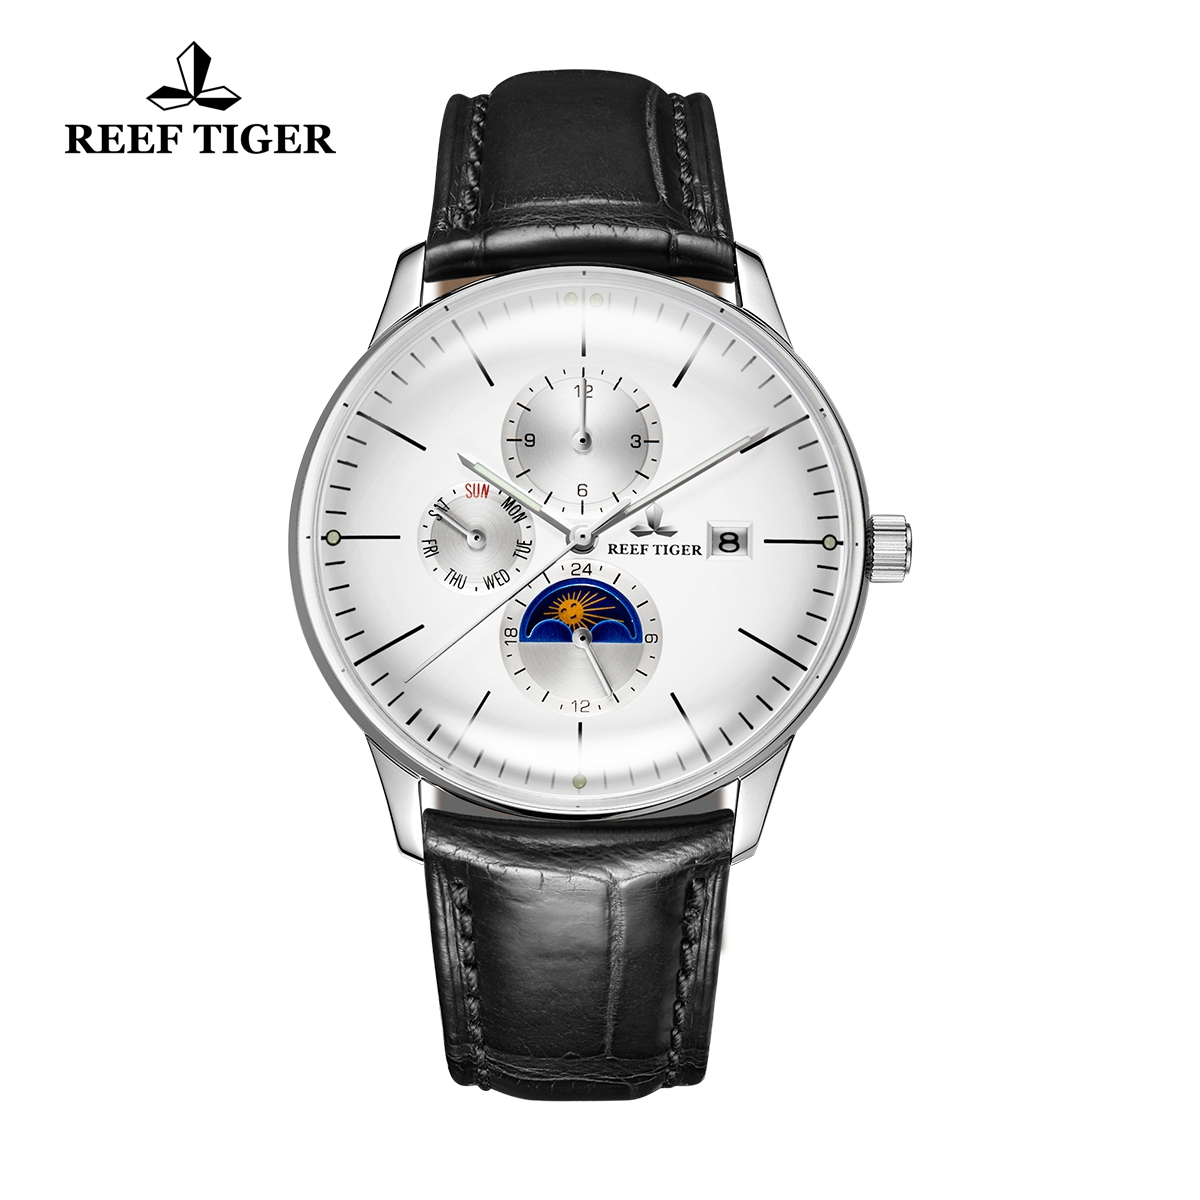 Reef Tiger Seattle Philosopher Men's Classic Casual Watch Leather Strap Automatic Watches with Date Day RGA1653-YWB